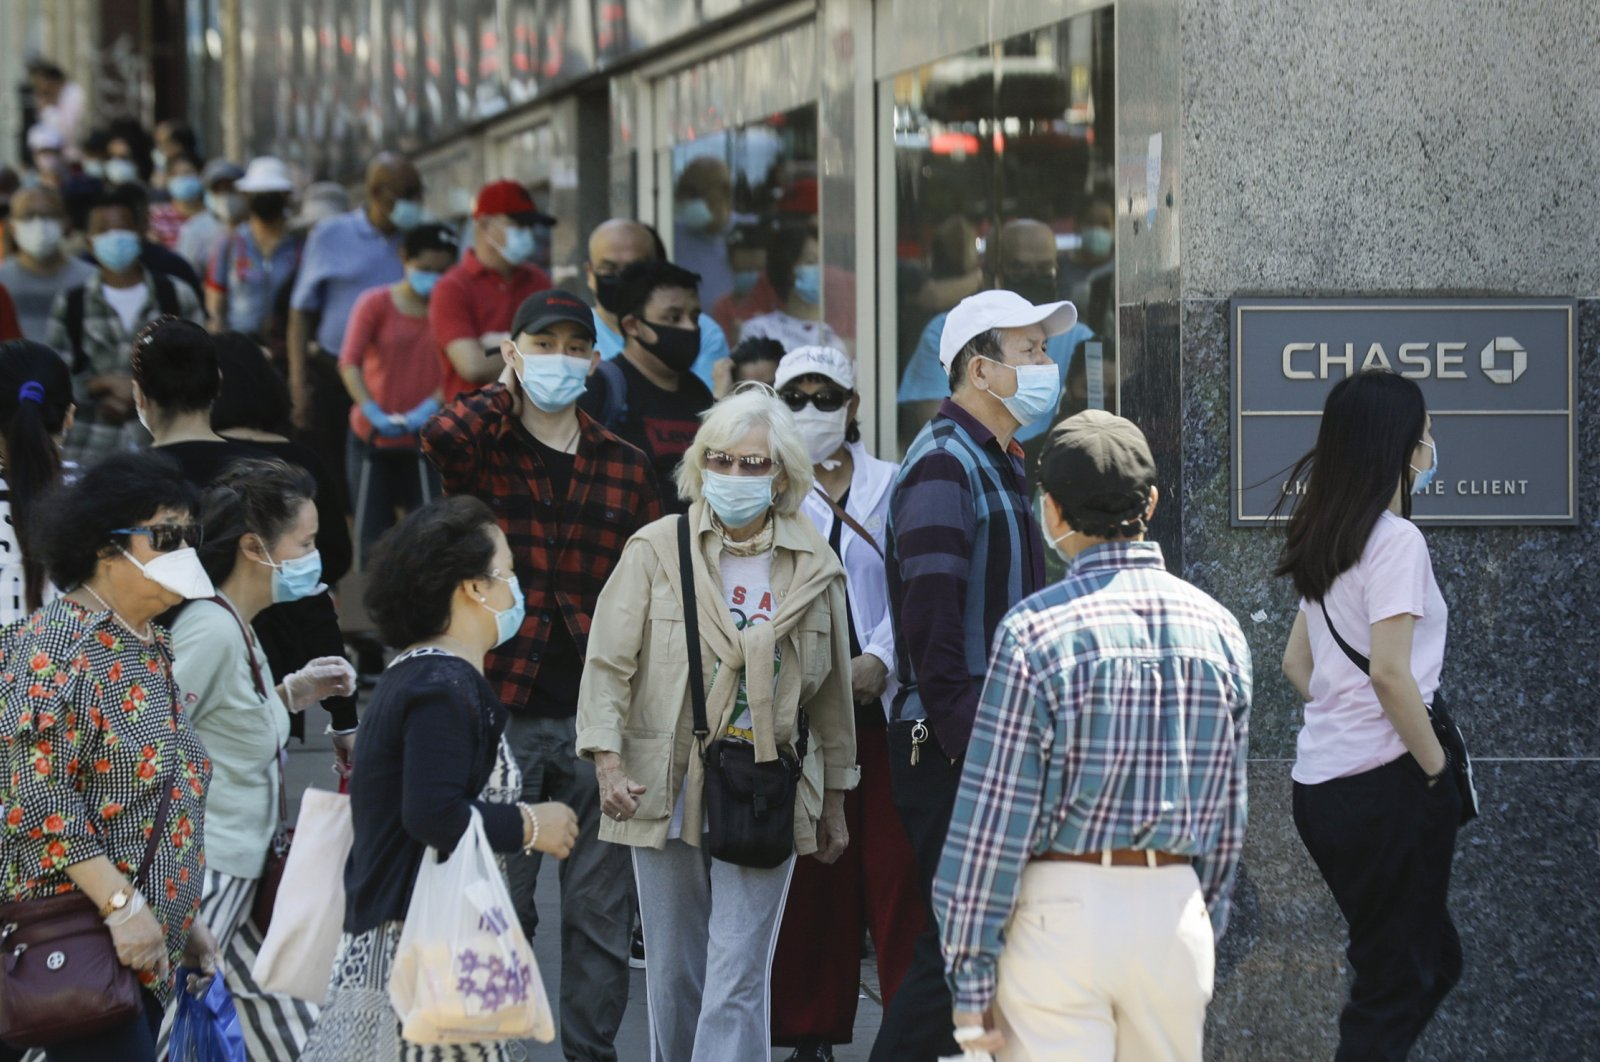 Patrons wearing protective masks wait to enter a Chase Bank location in the Flushing section of the Queens borough of New York City, New York, U.S., June 8, 2020. (AP Photo)